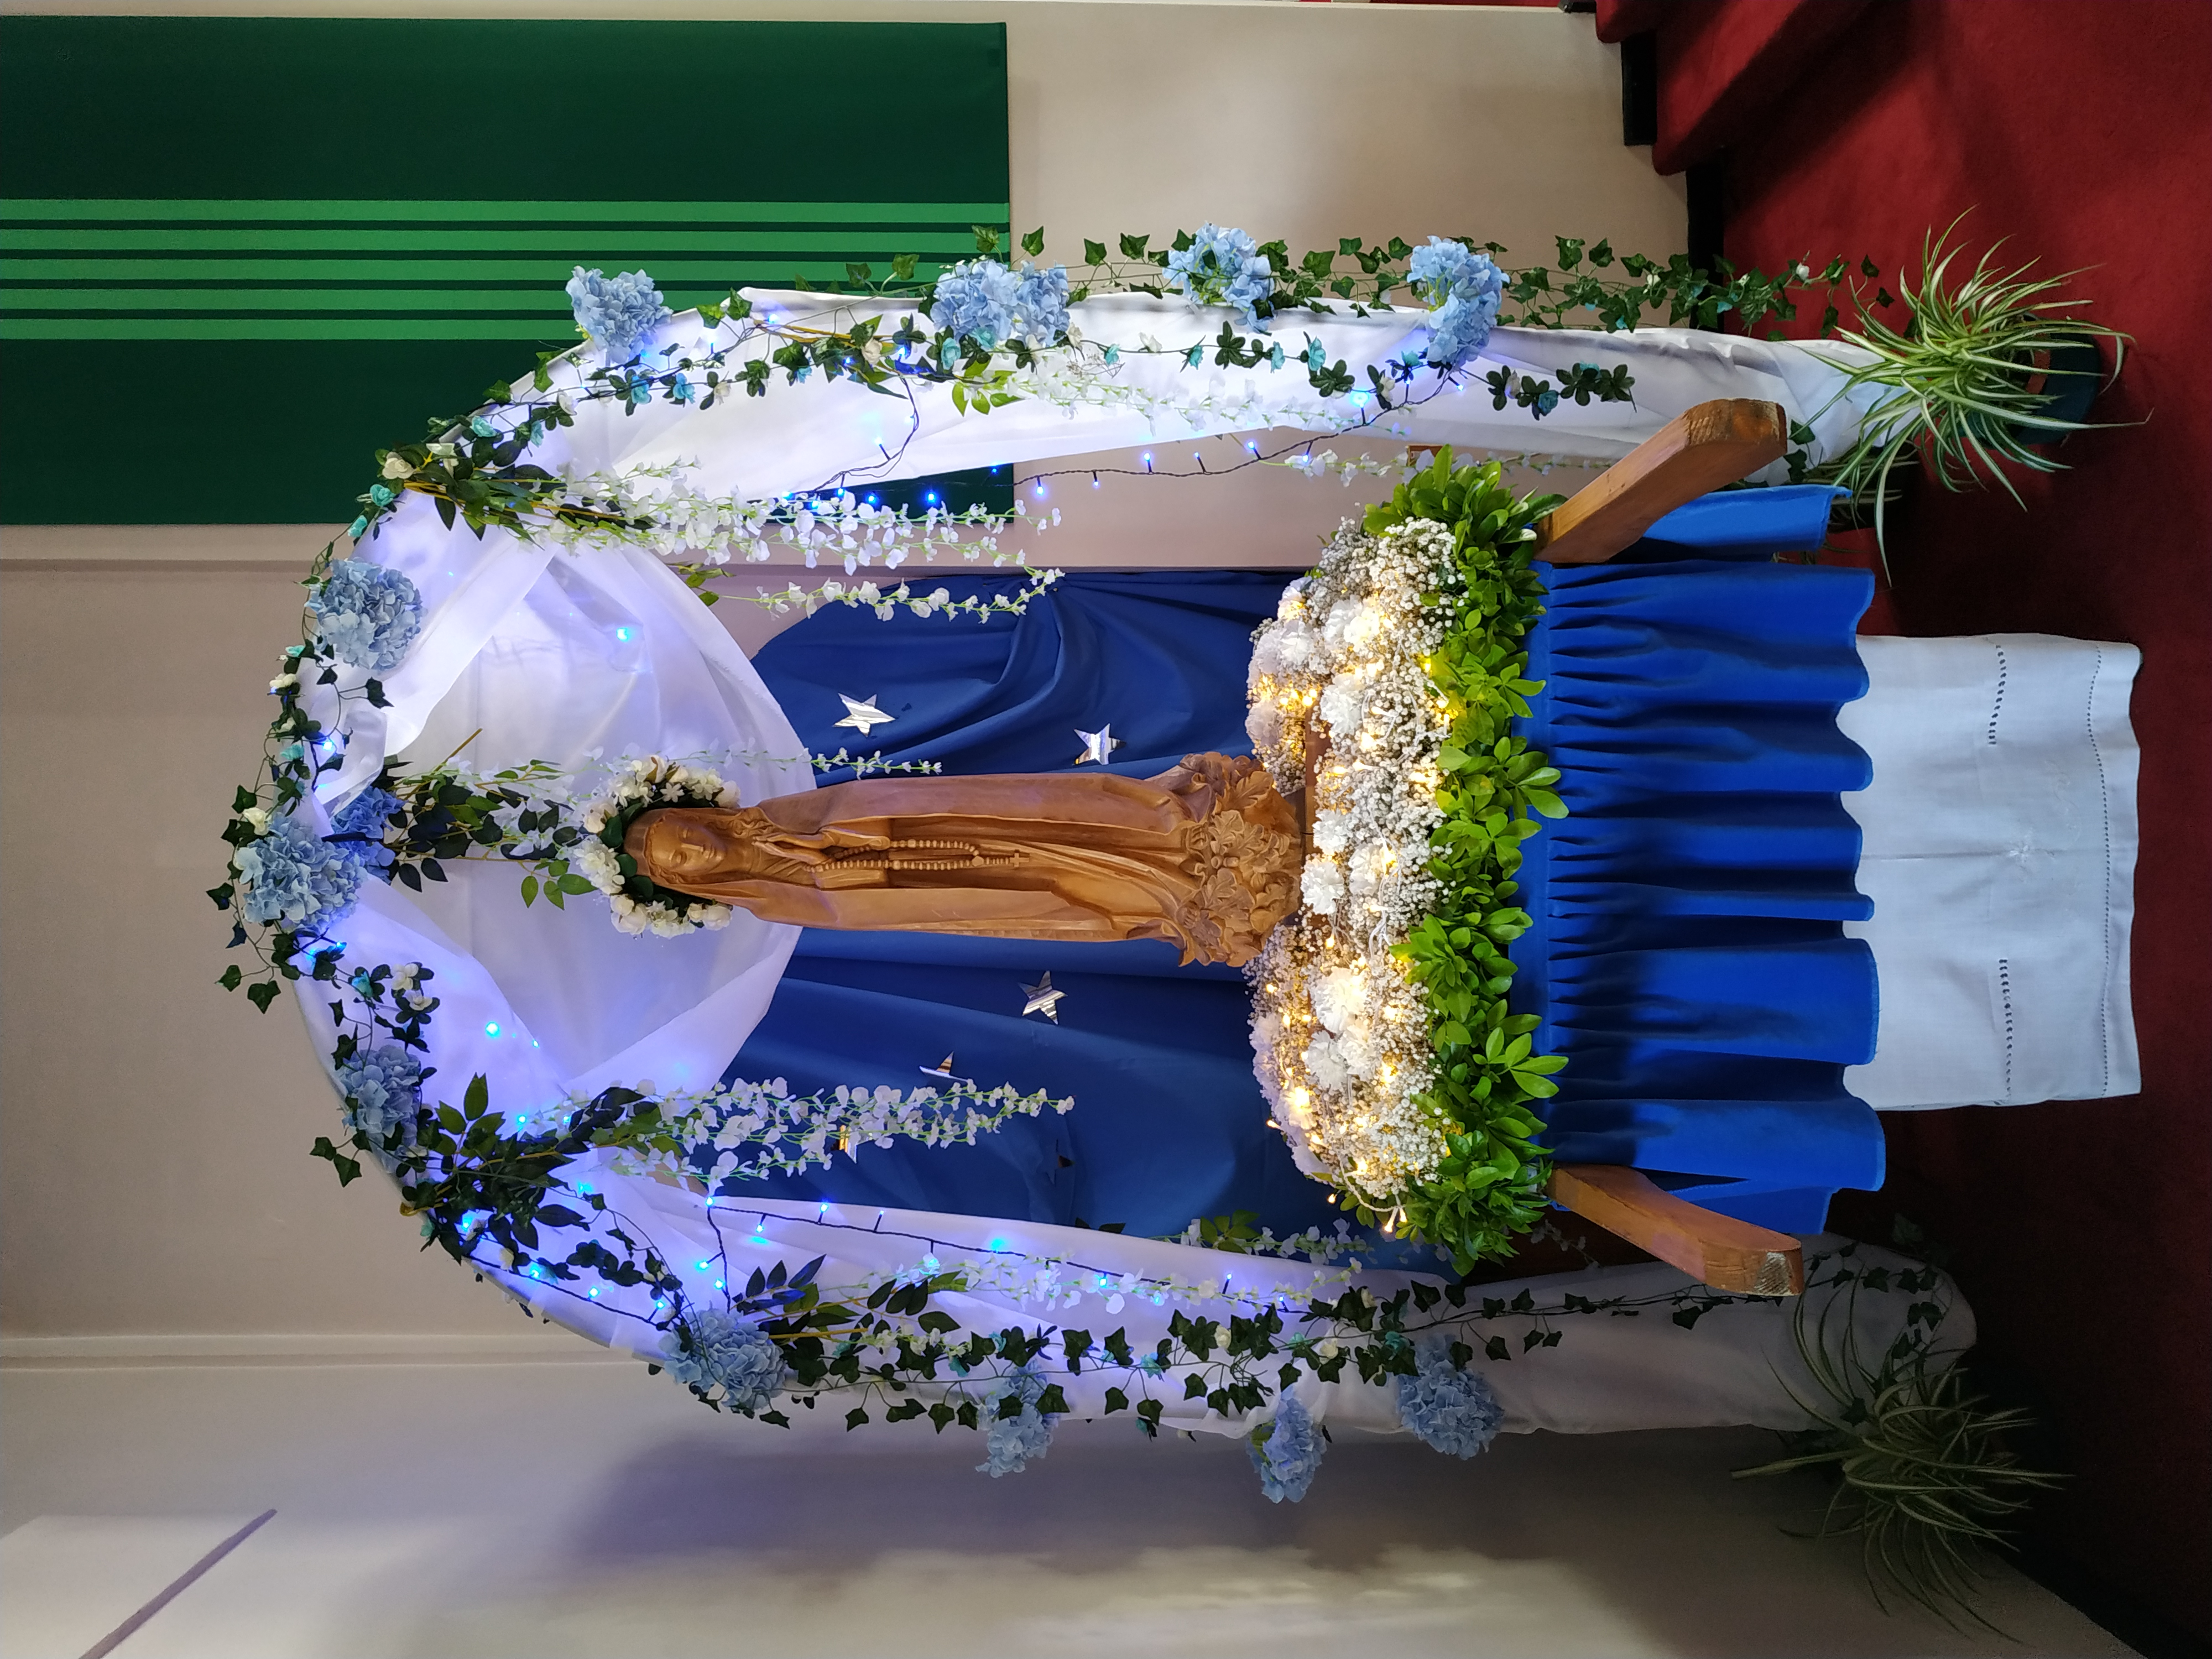 Feast of our Lady of the Rosary